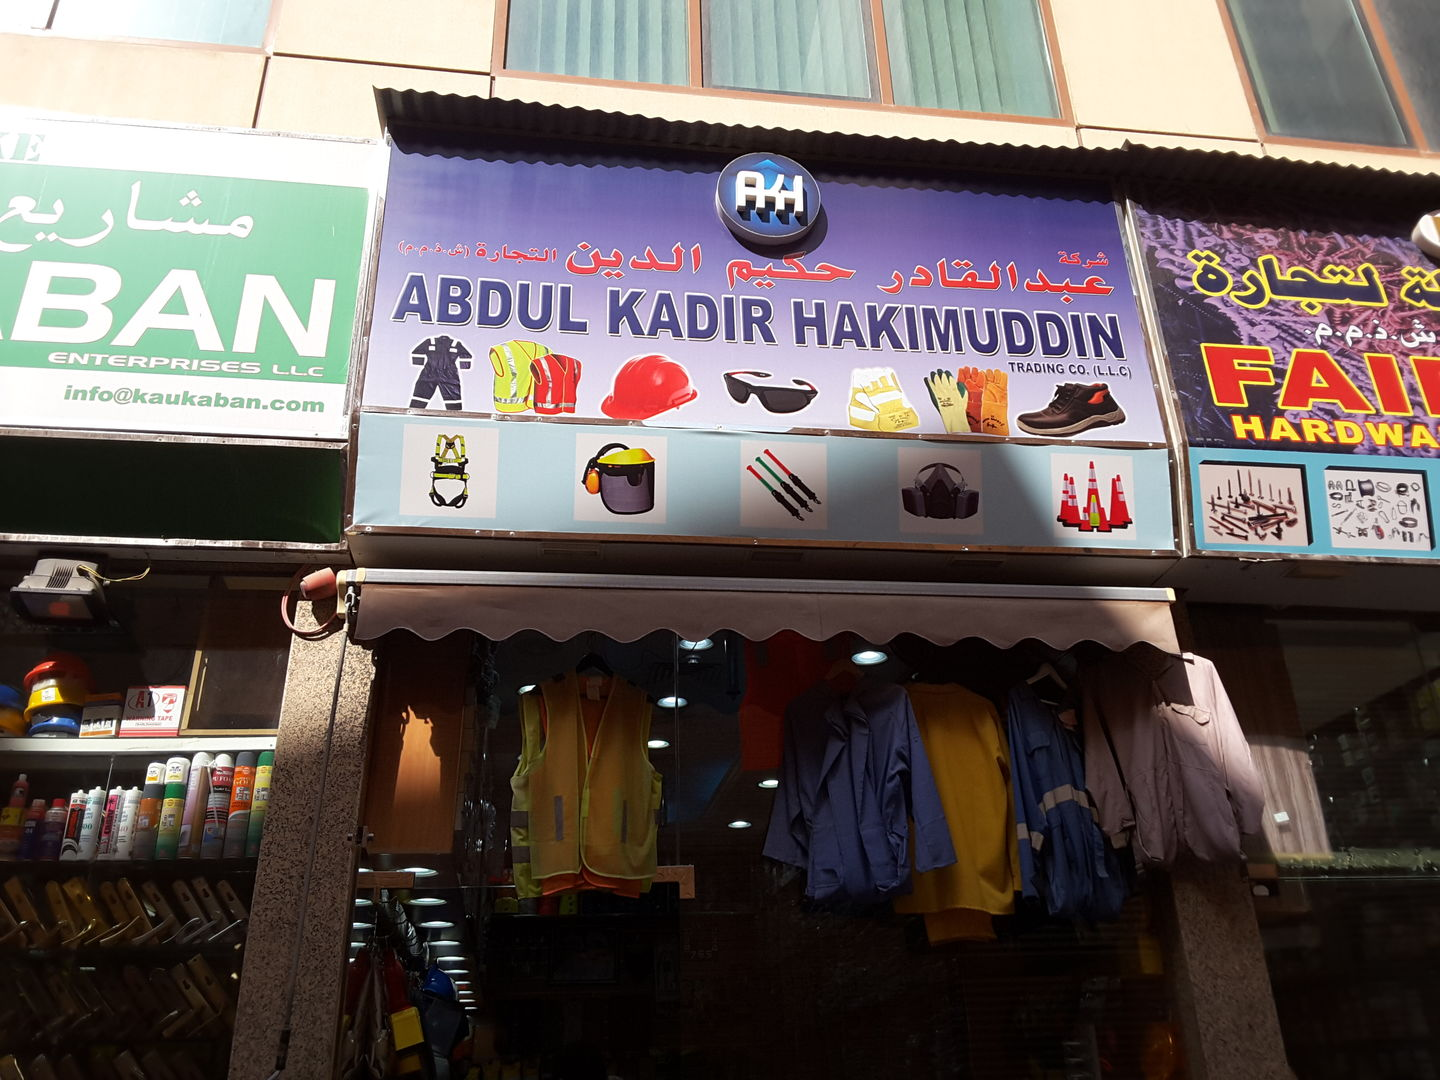 HiDubai-business-abdul-kadir-hakimuddin-trading-home-hardware-fittings-naif-dubai